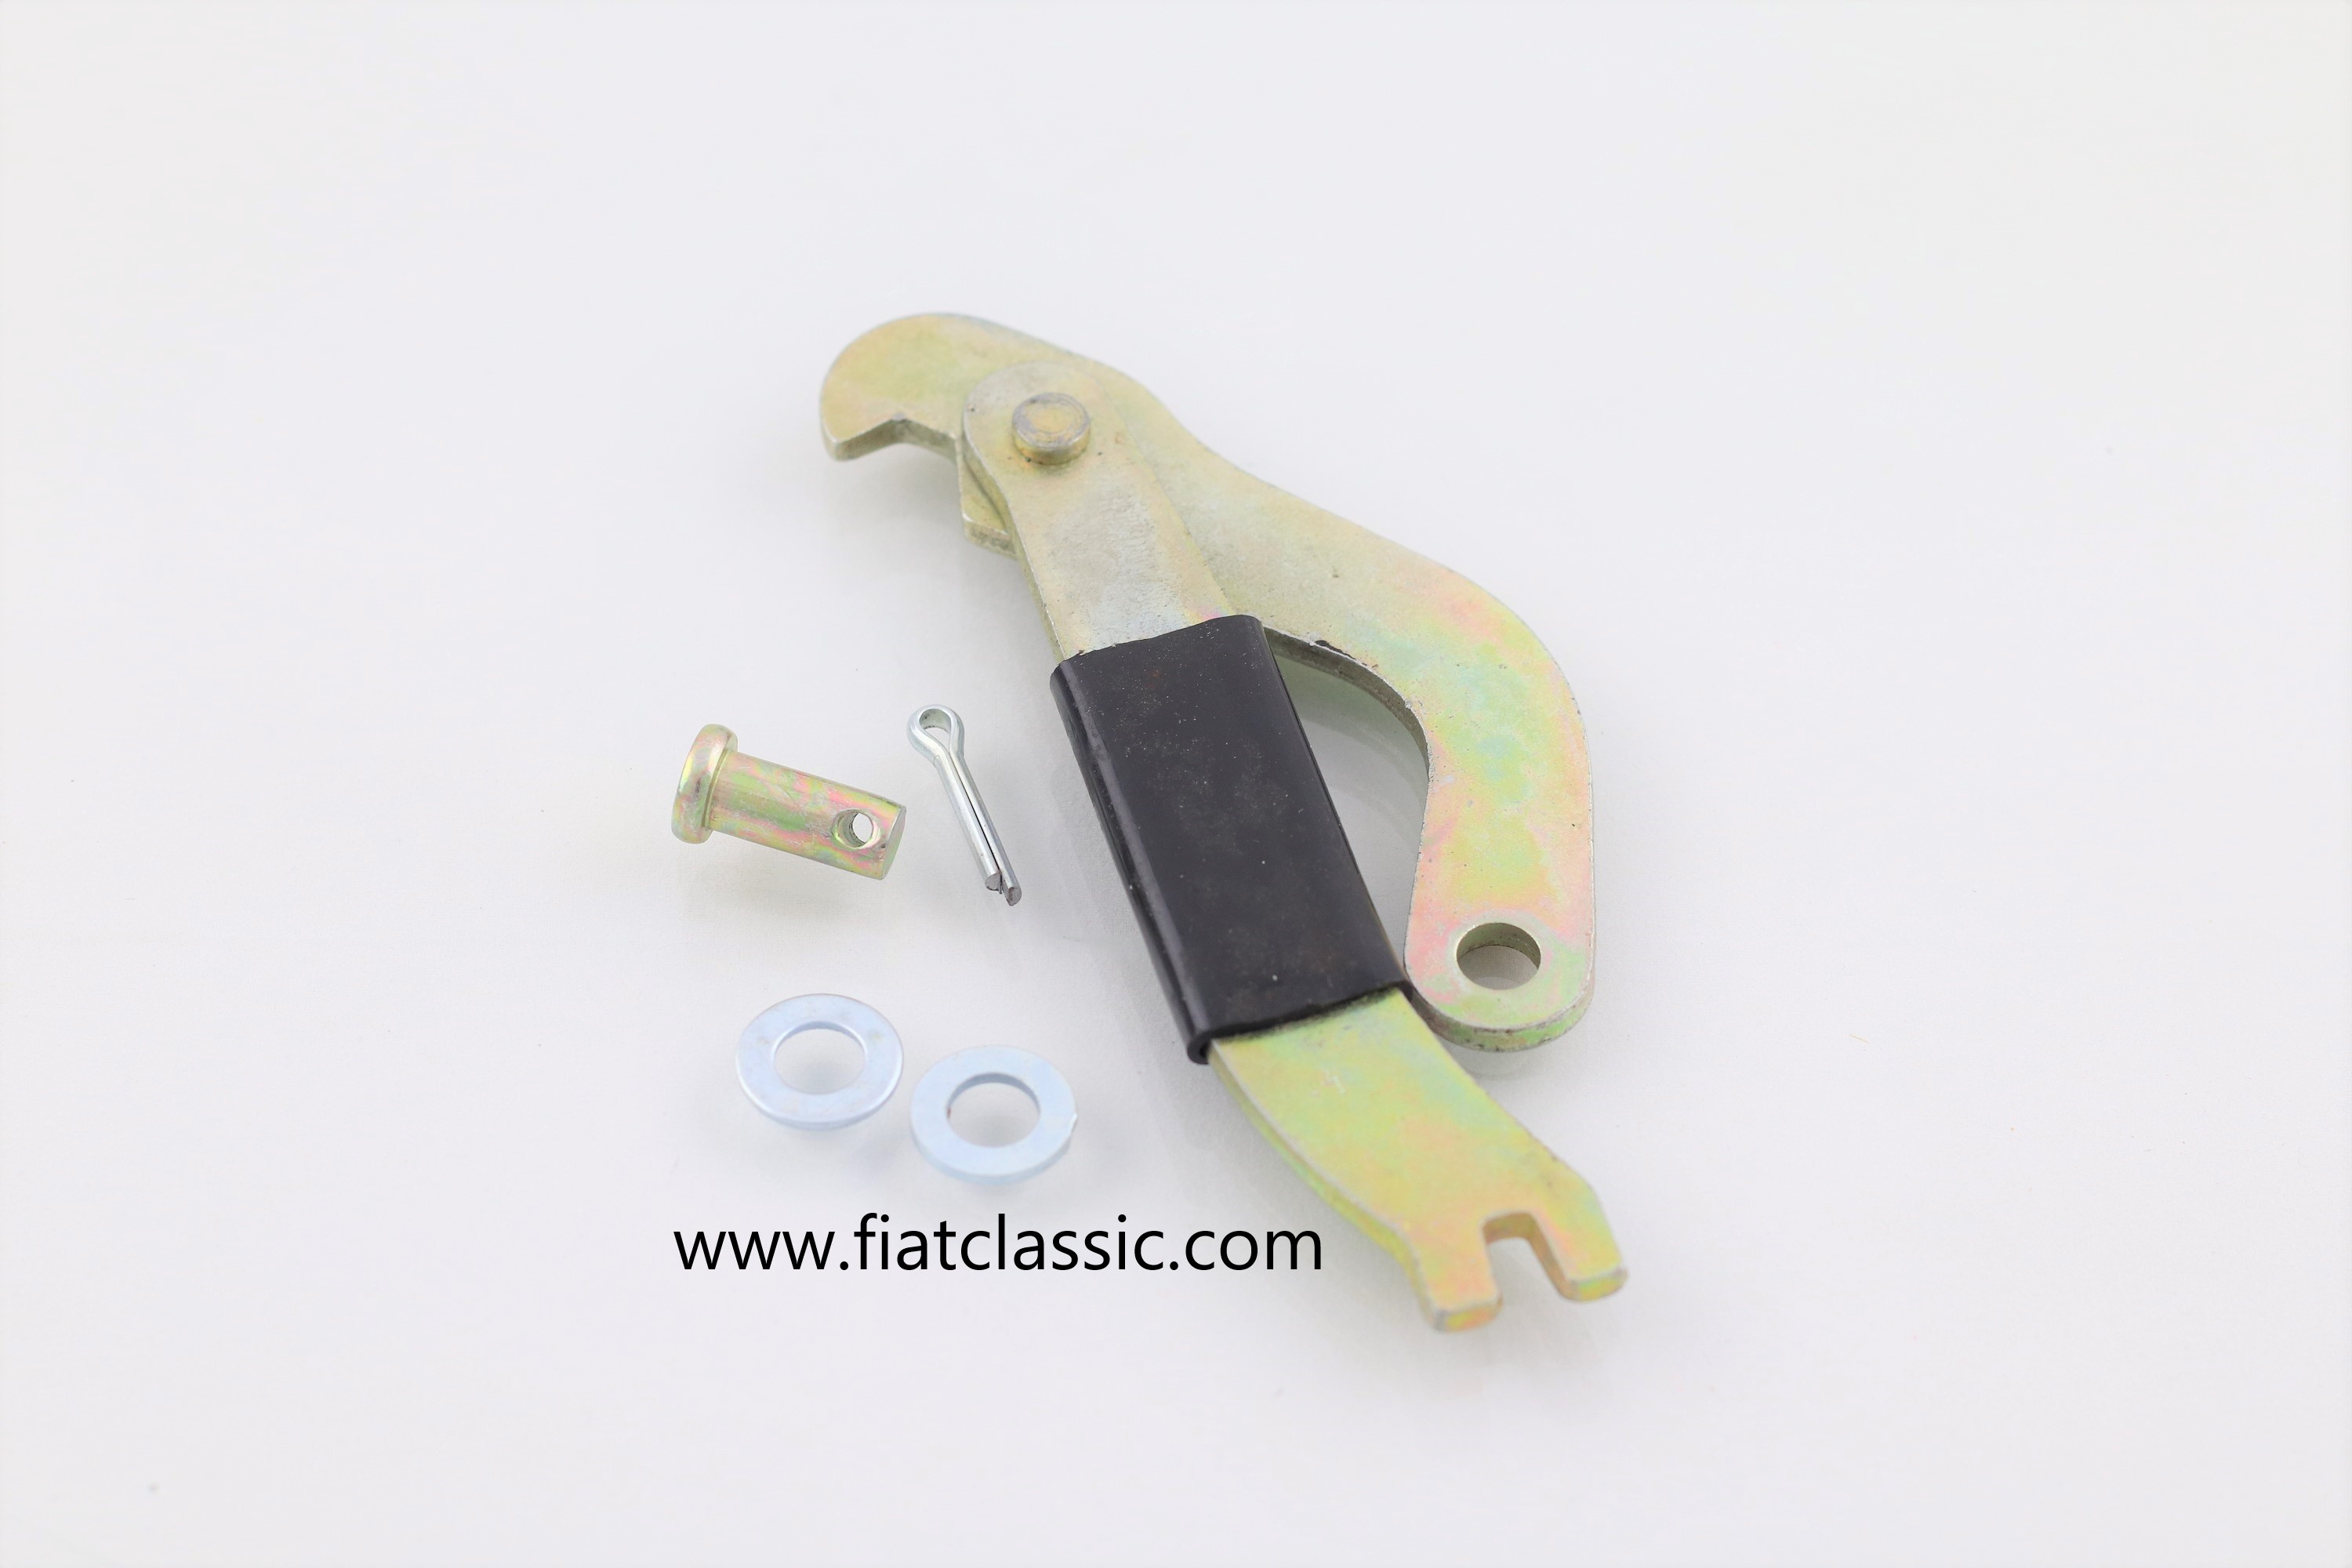 Pair of Window Handle Spacer Trim Fiat 126